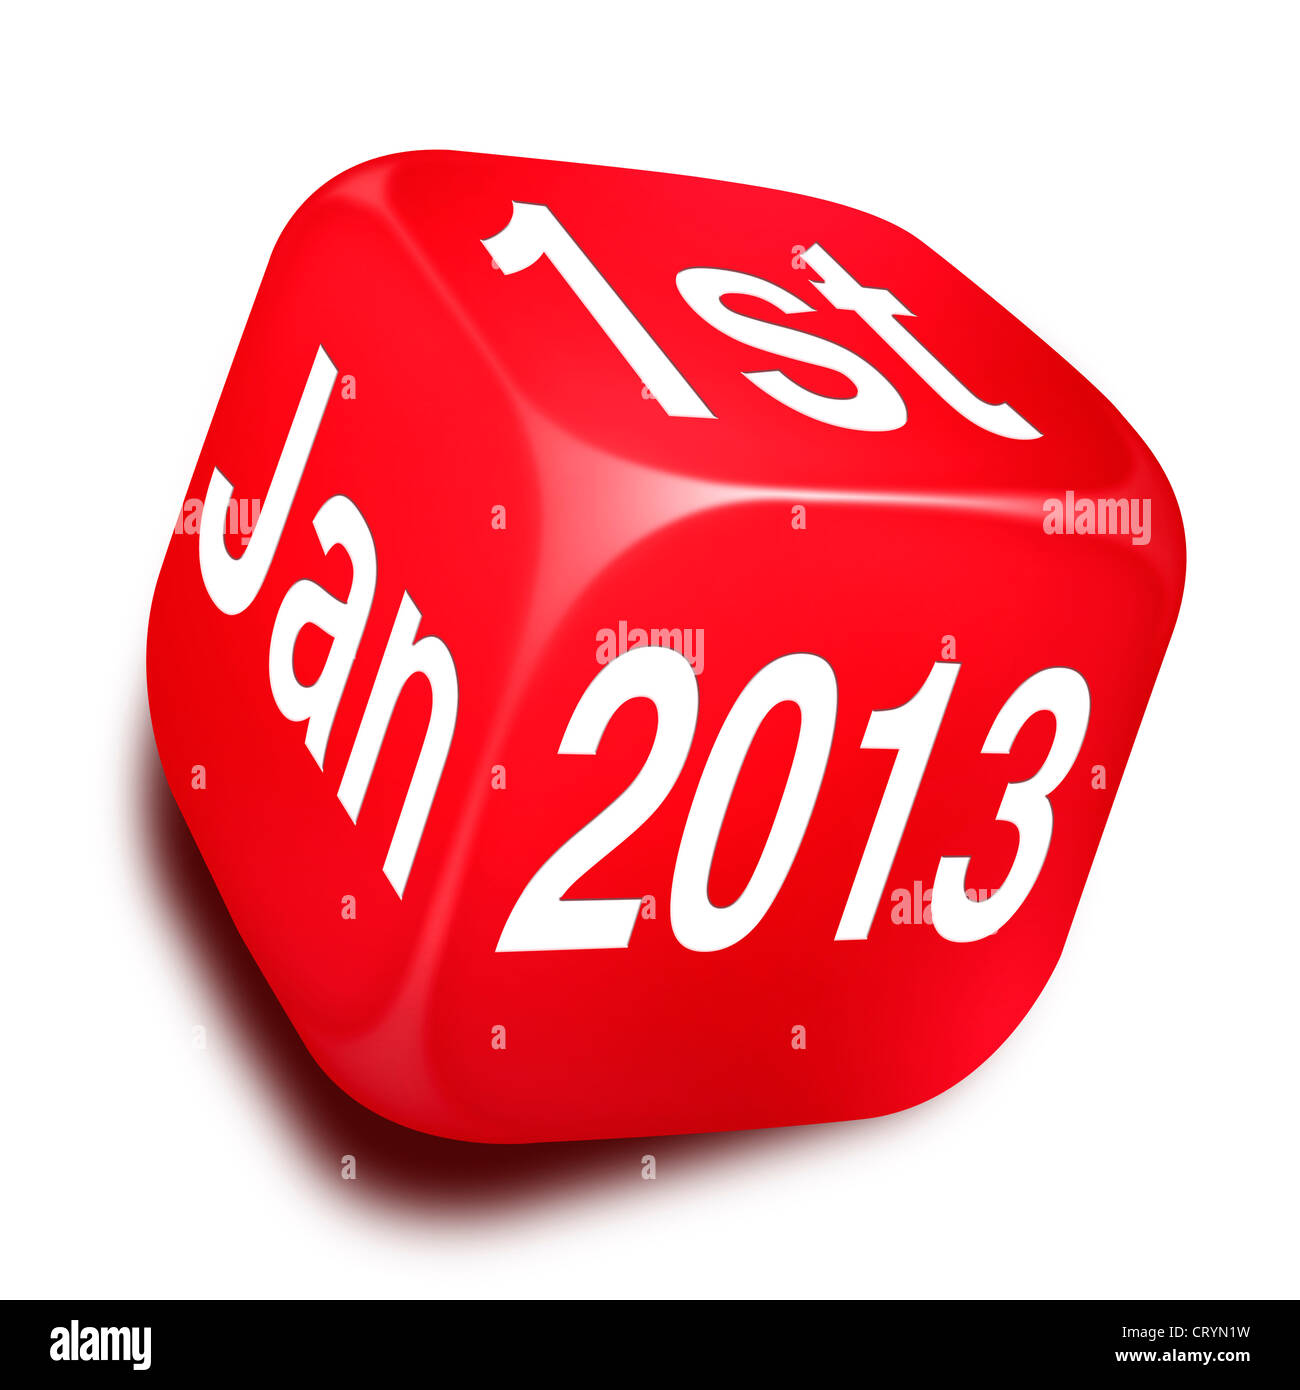 Red Dice with the date 1st Jan 2013 printed across three of it's faces - Stock Image